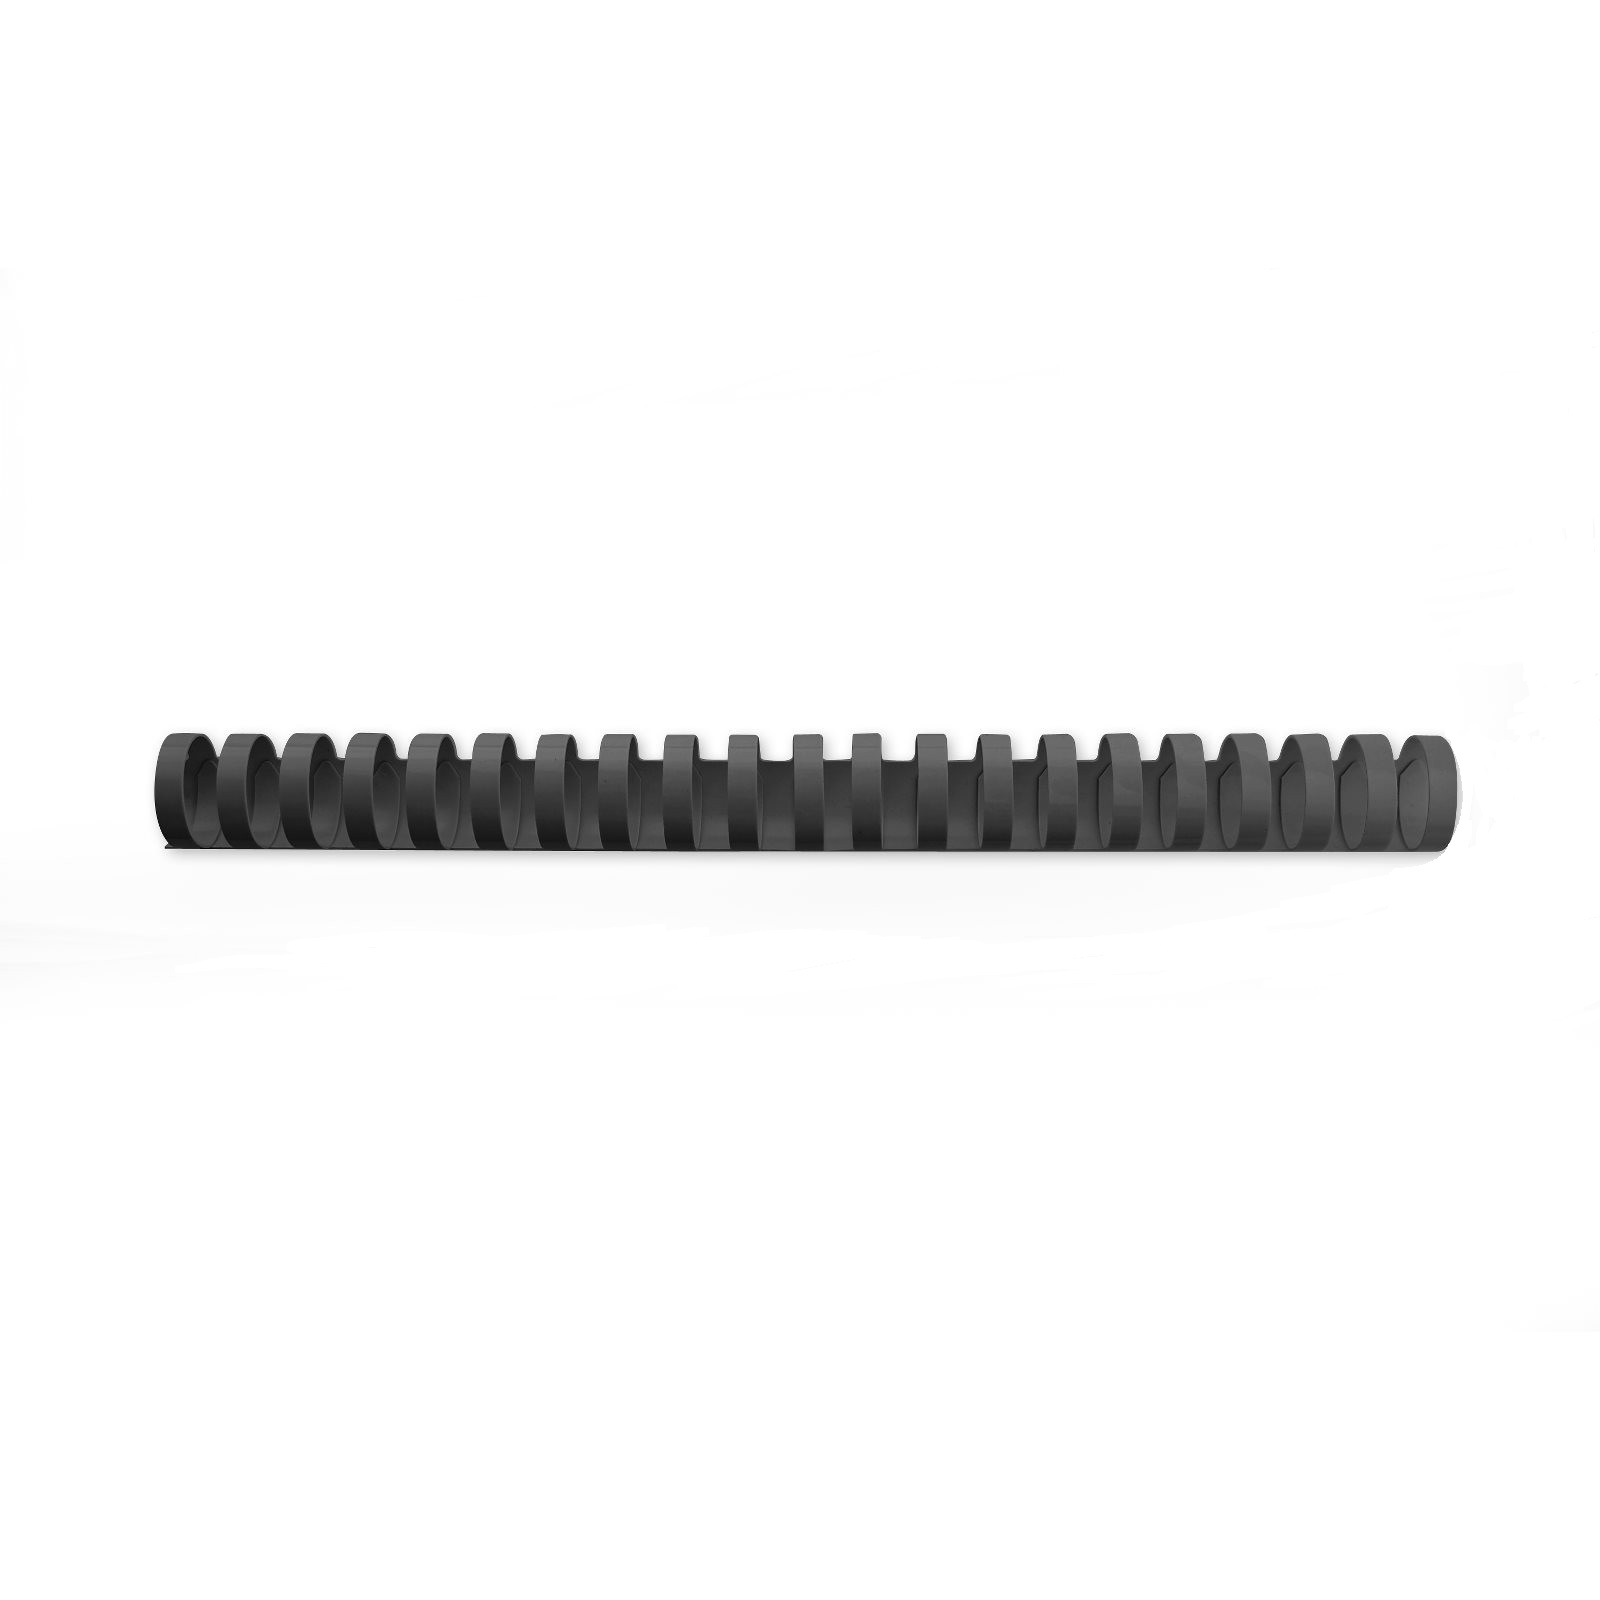 GBC Bind Combs 21 Ring A4 25mm BK PK50